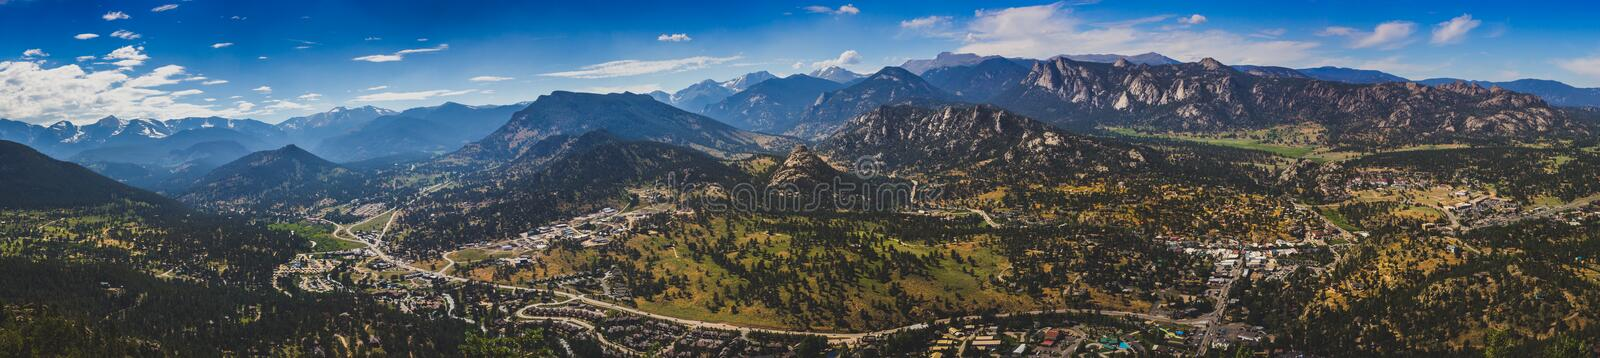 Estes Park Aerial Panorama. Scenic valley and snow-covered peaks under a blue sky with clouds in Estes Park, Colorado near the Rocky Mountain National Park royalty free stock image